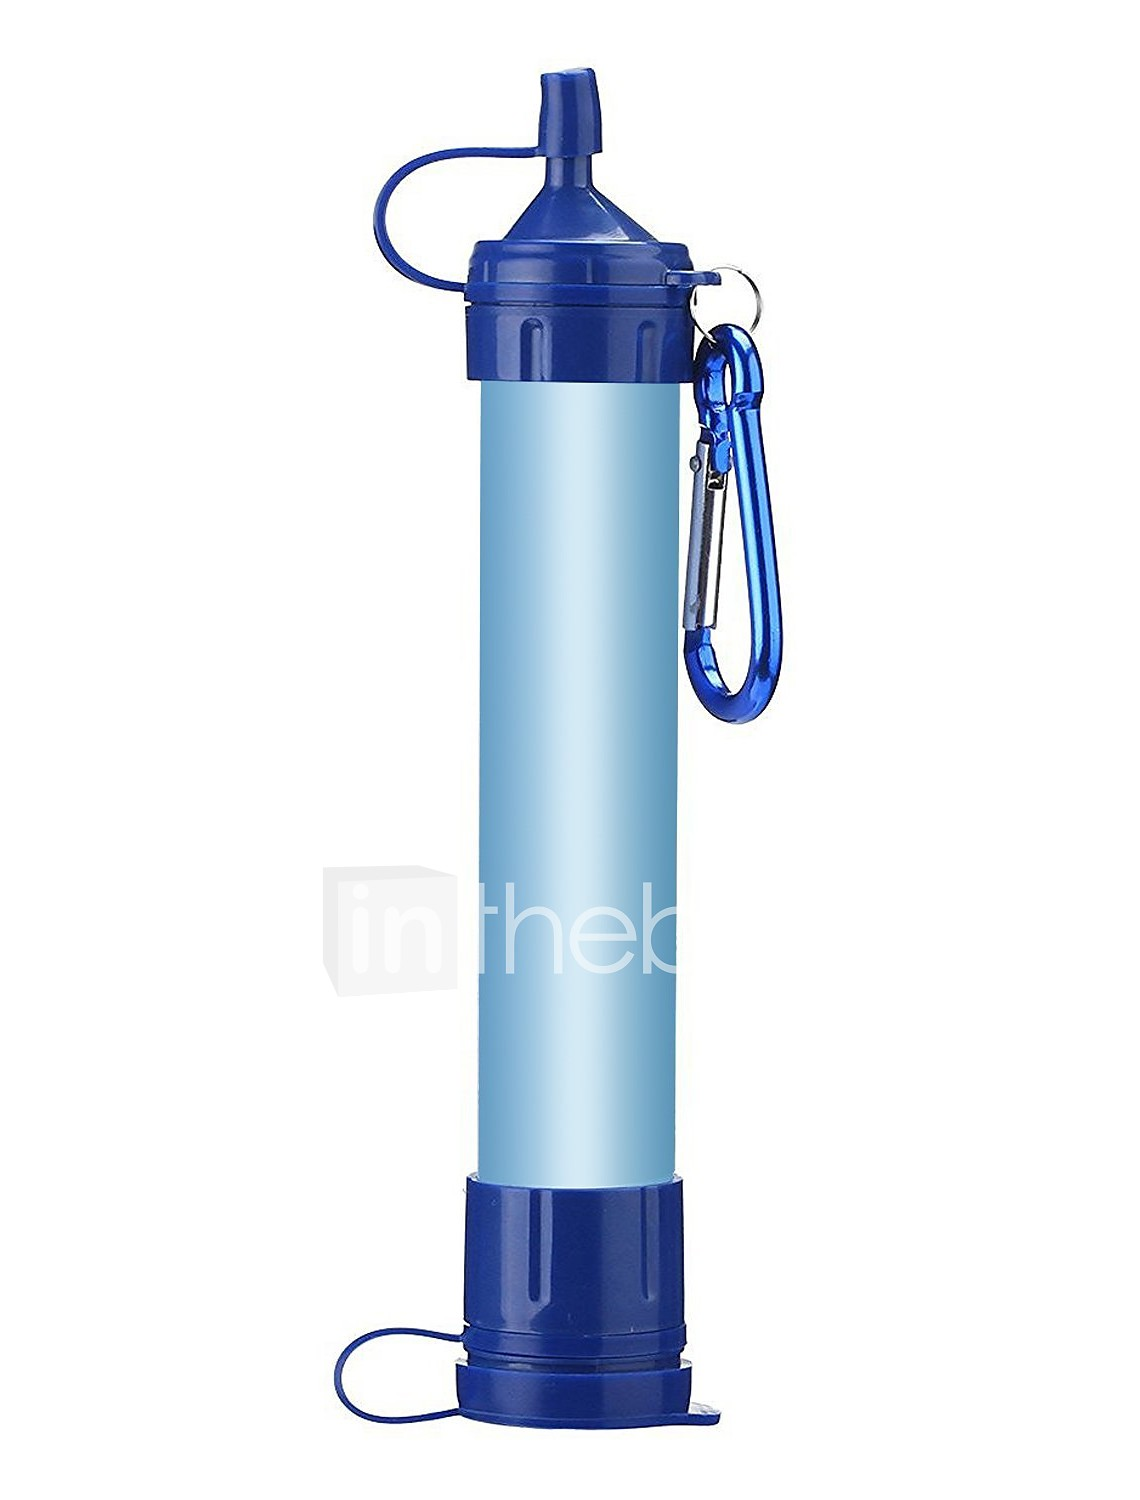 Outdoor Direct Drinking Water Filter Camping Hiking Water Purifier Cleaner GH